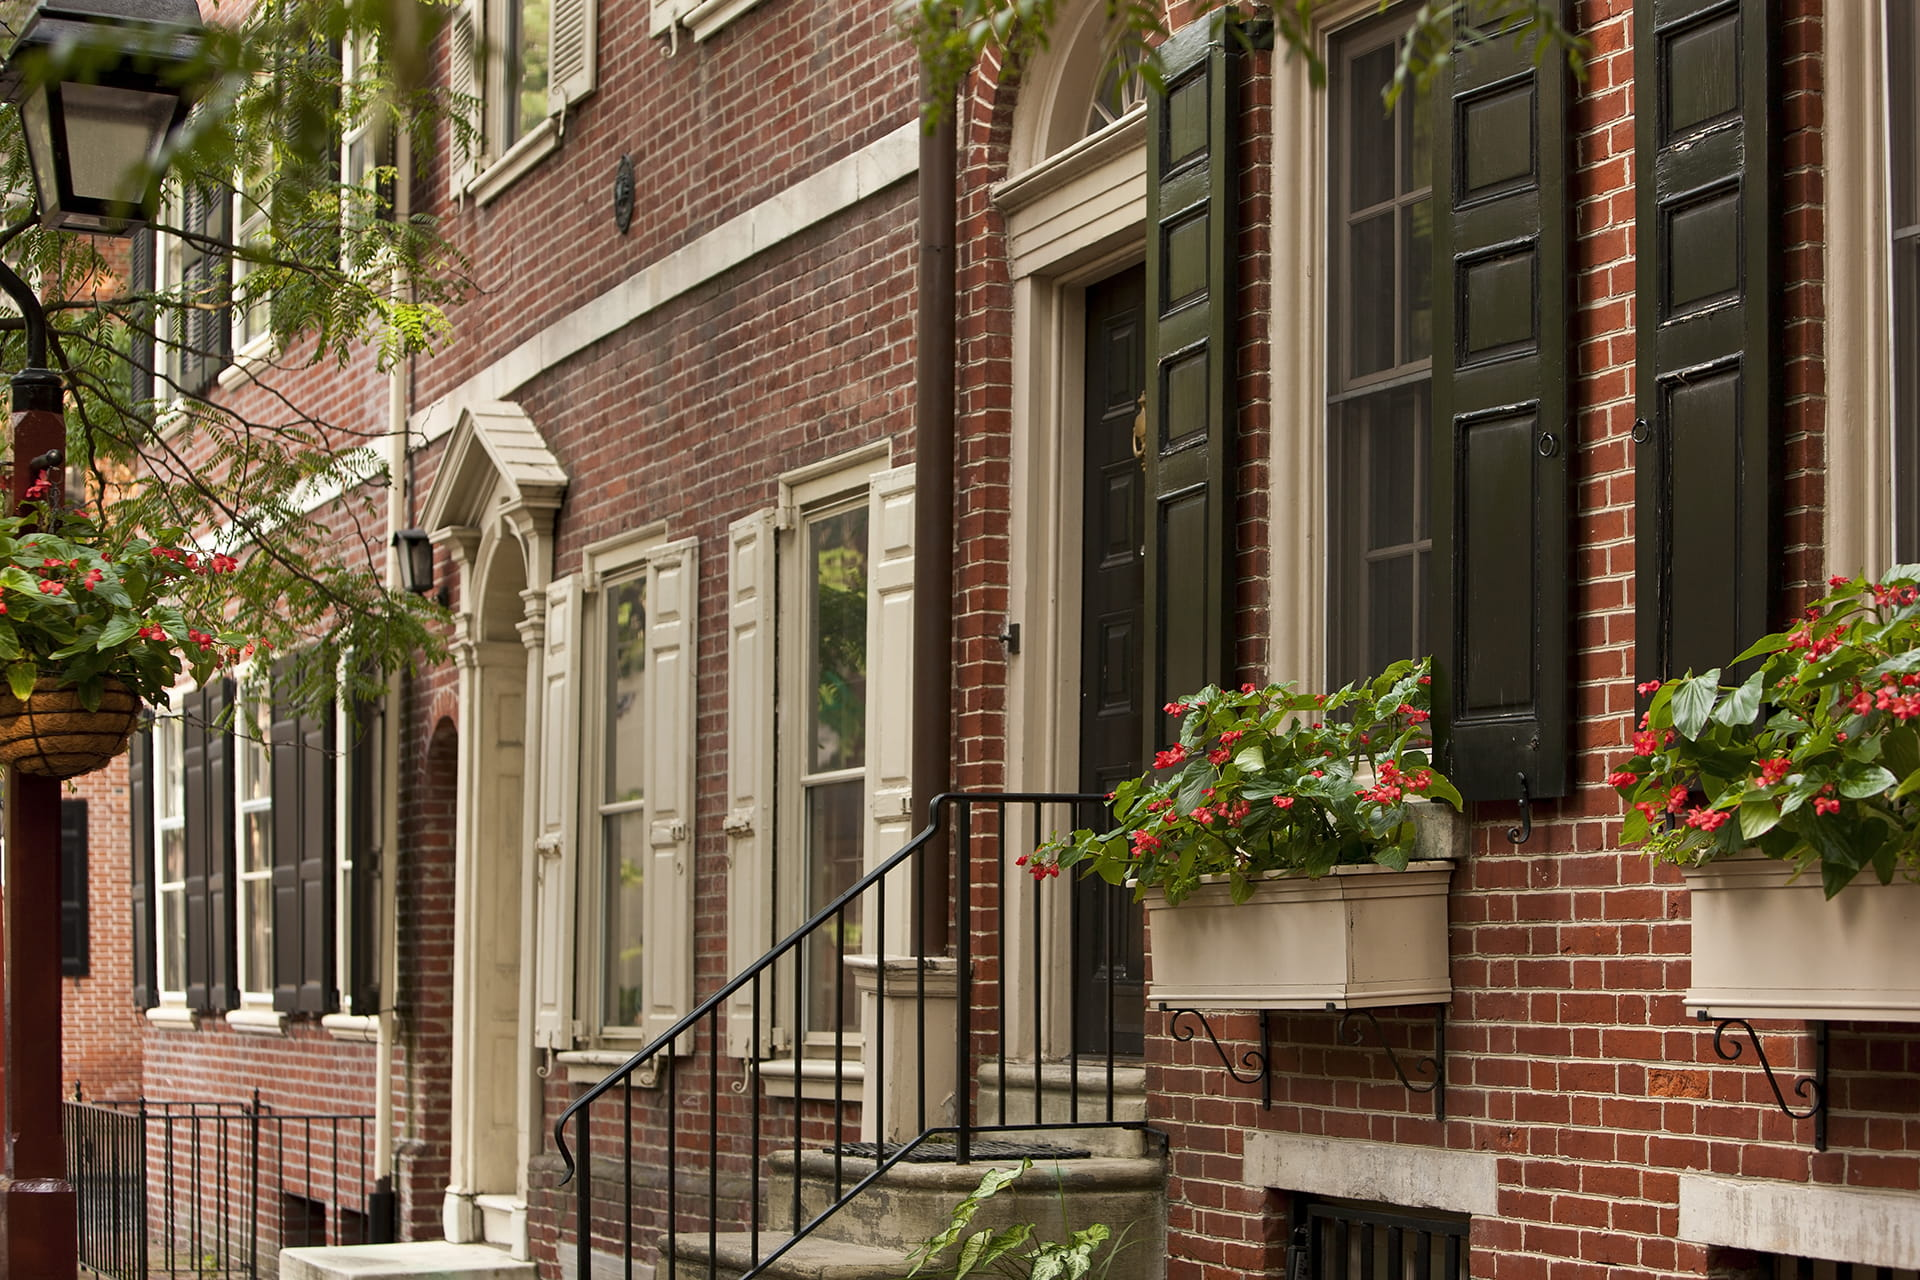 Philadelphia Red Brick Neighborhood